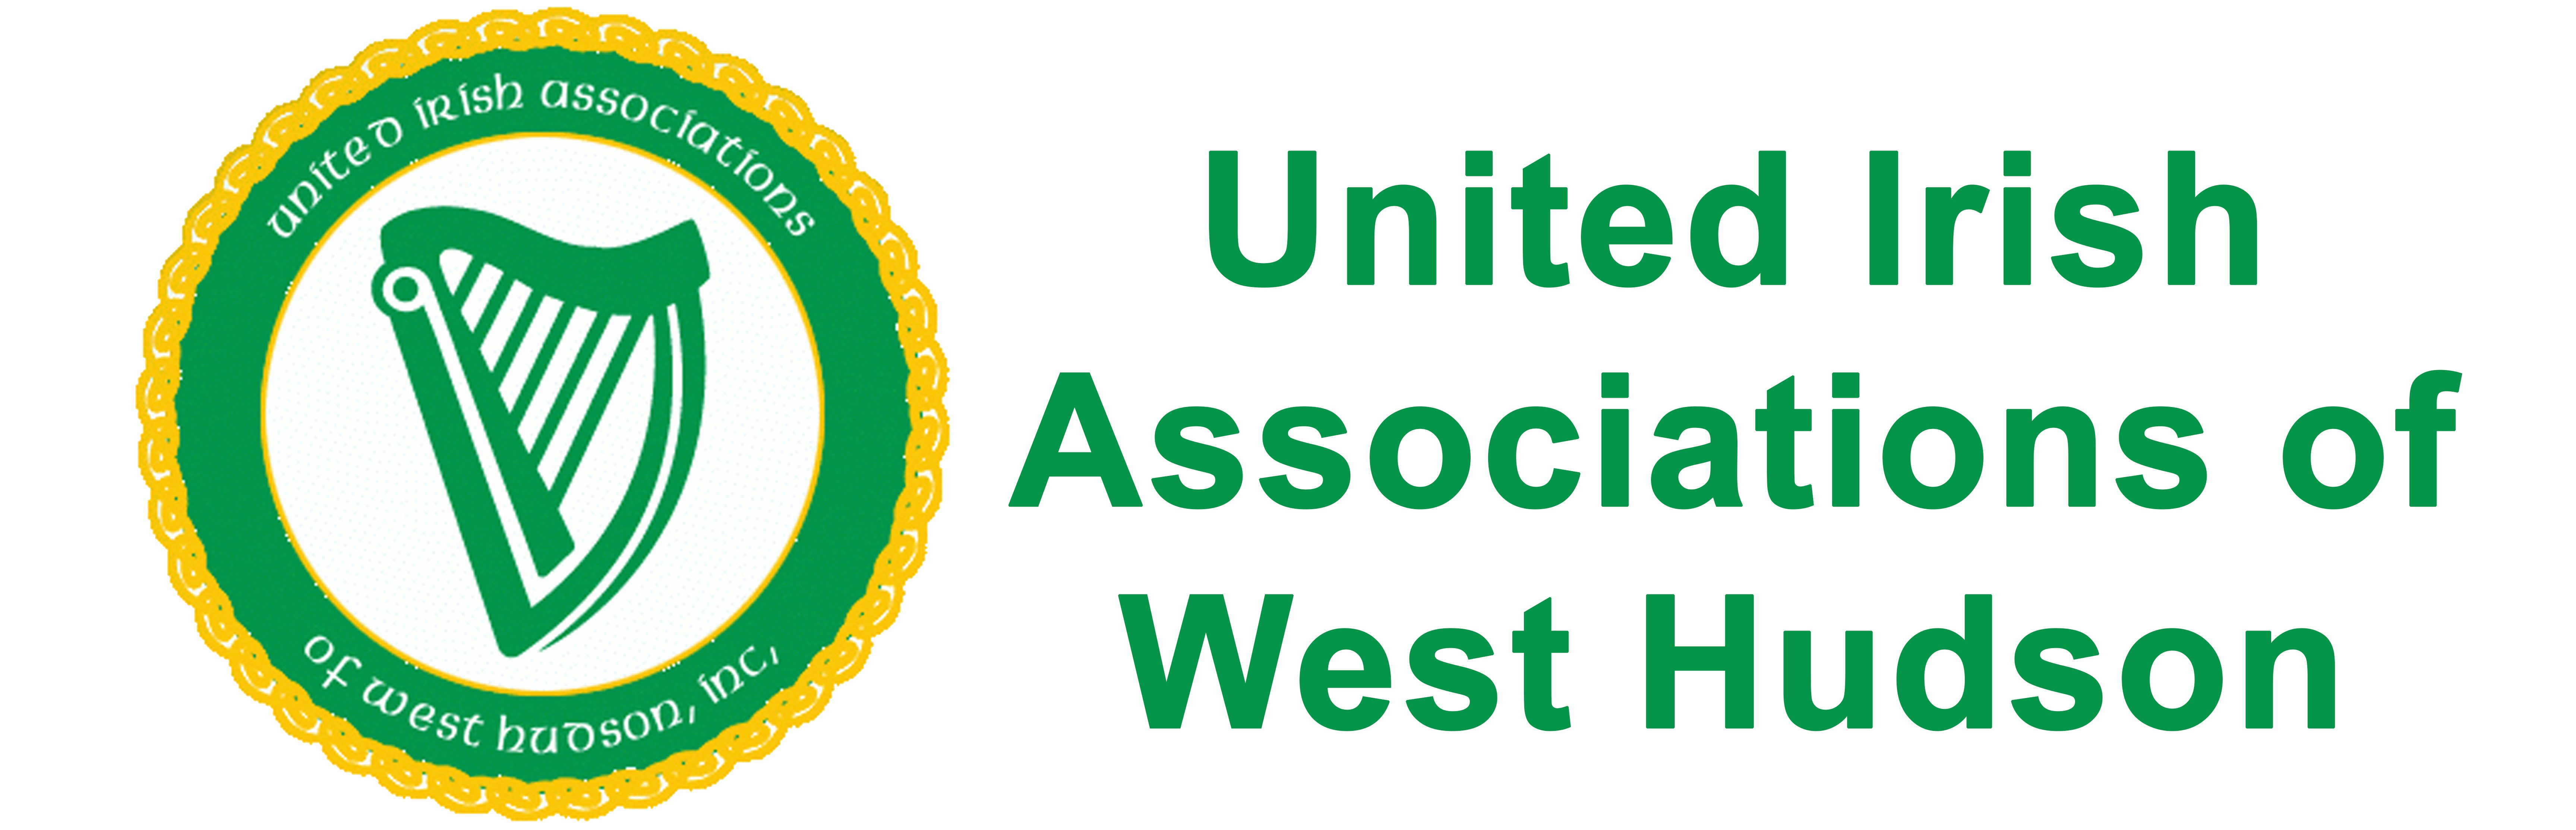 United Irish Associations of West Hudson